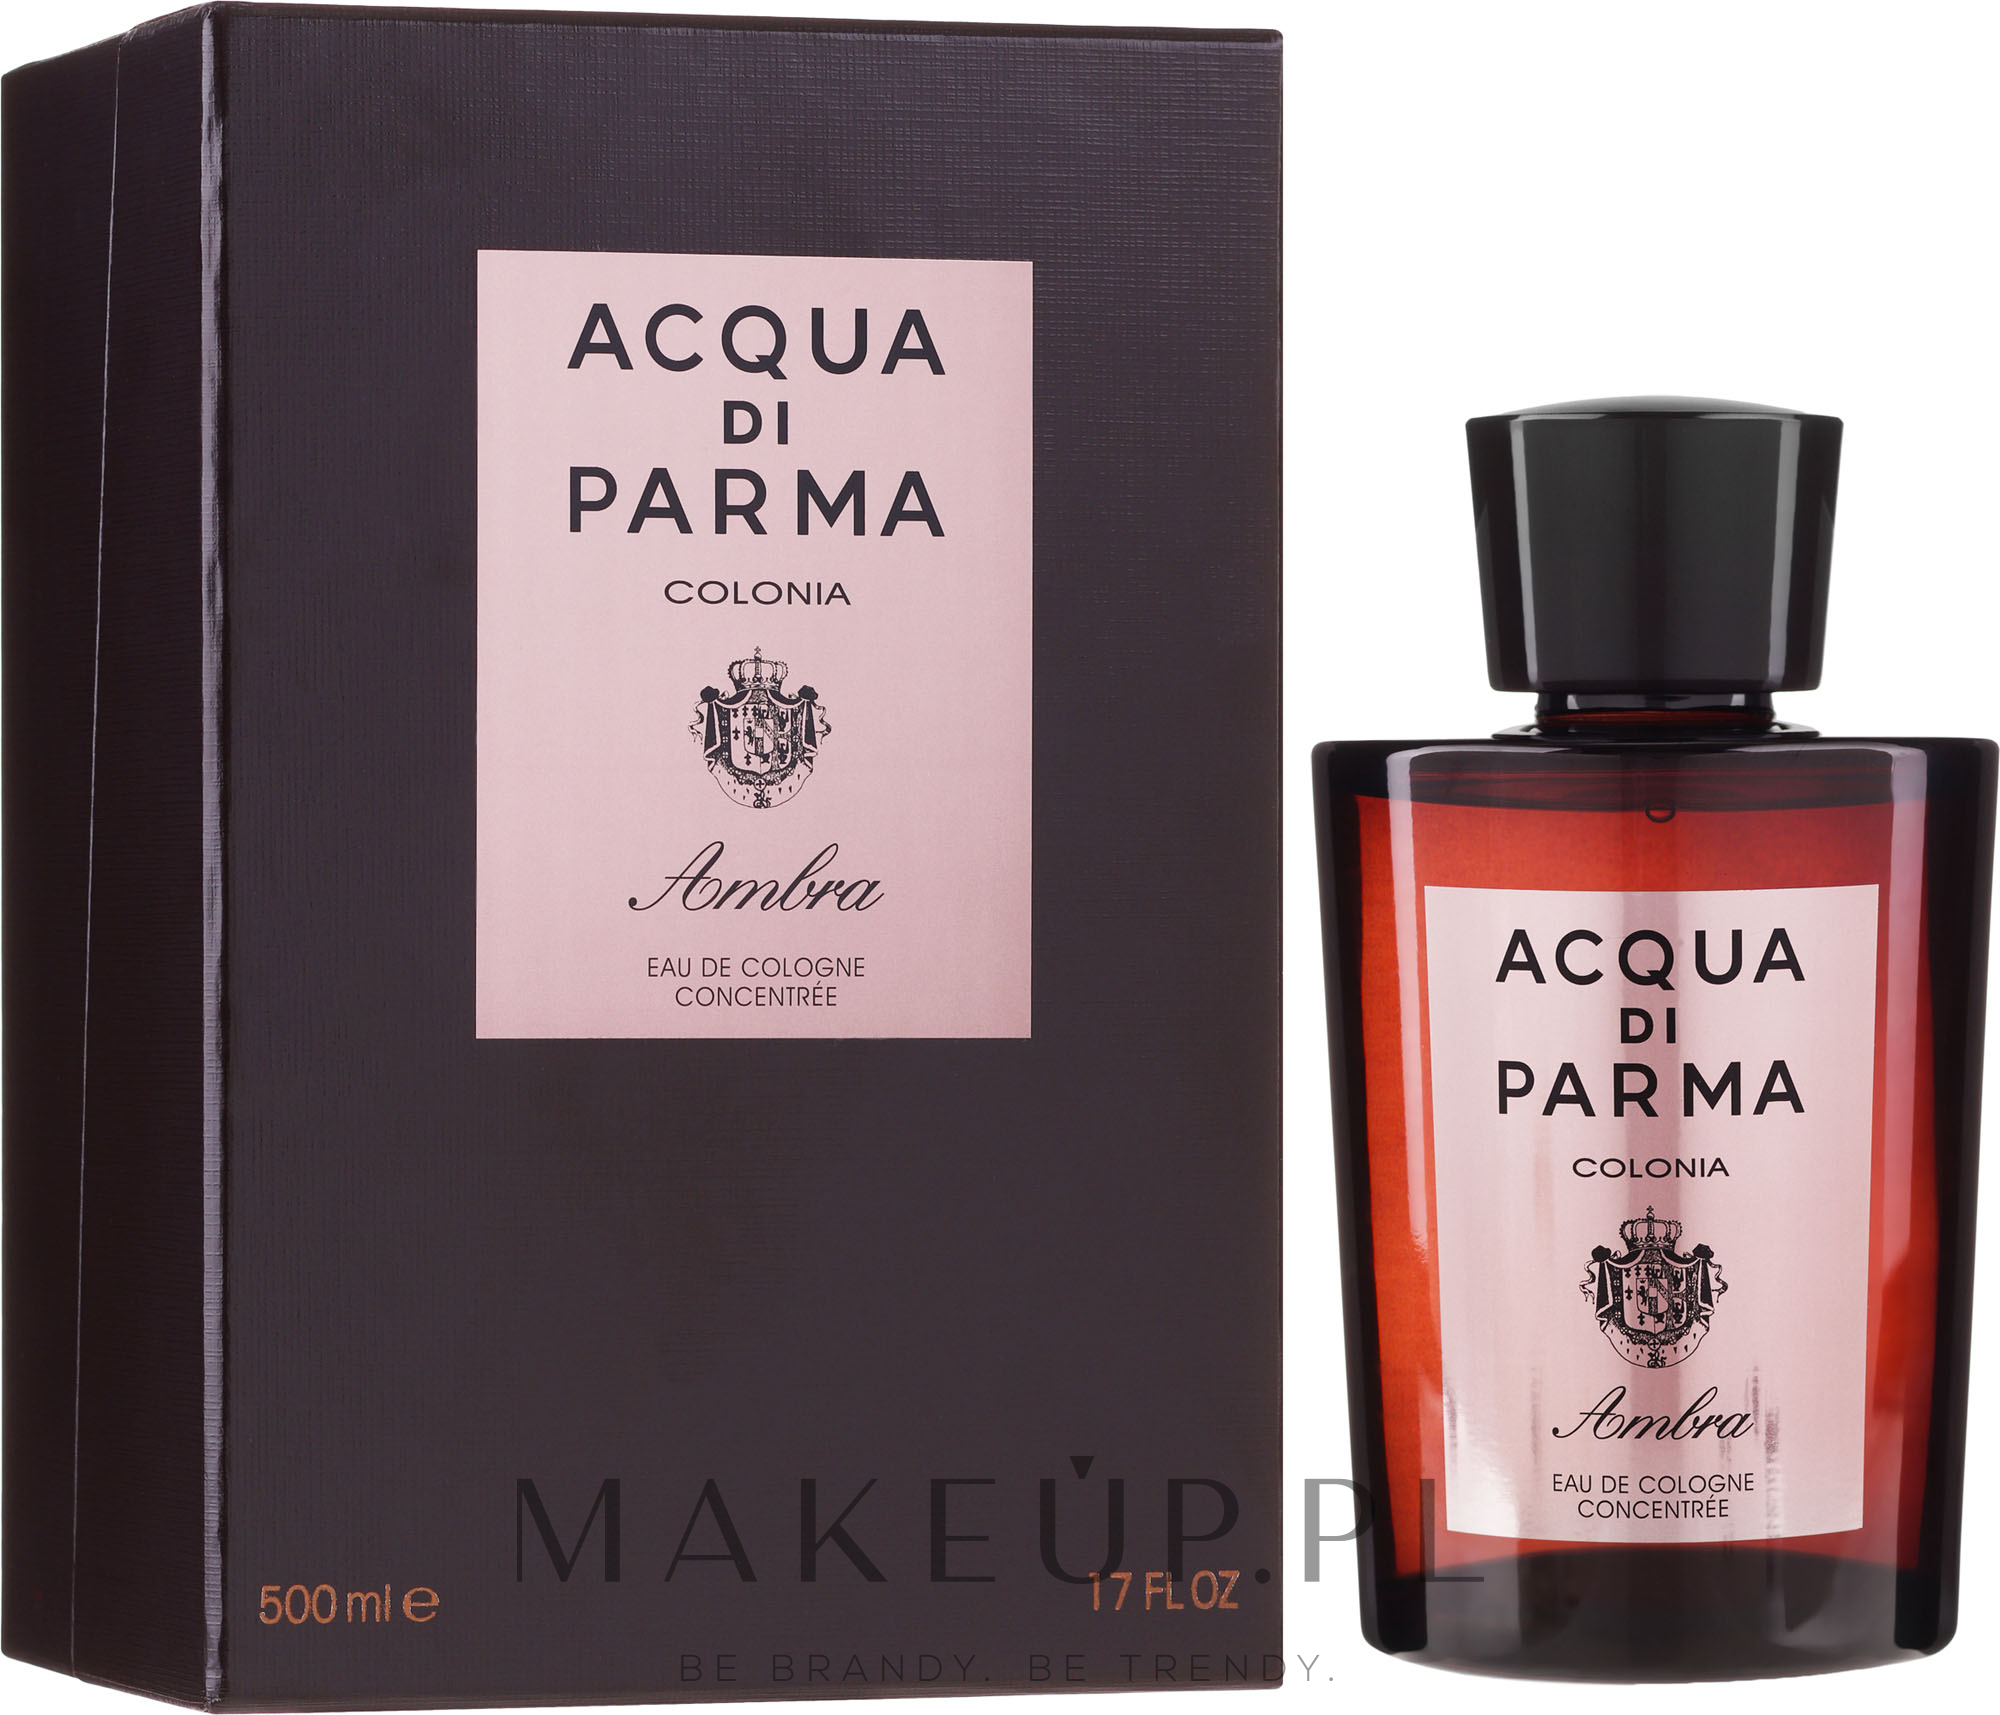 acqua di parma colonia ambra concentree